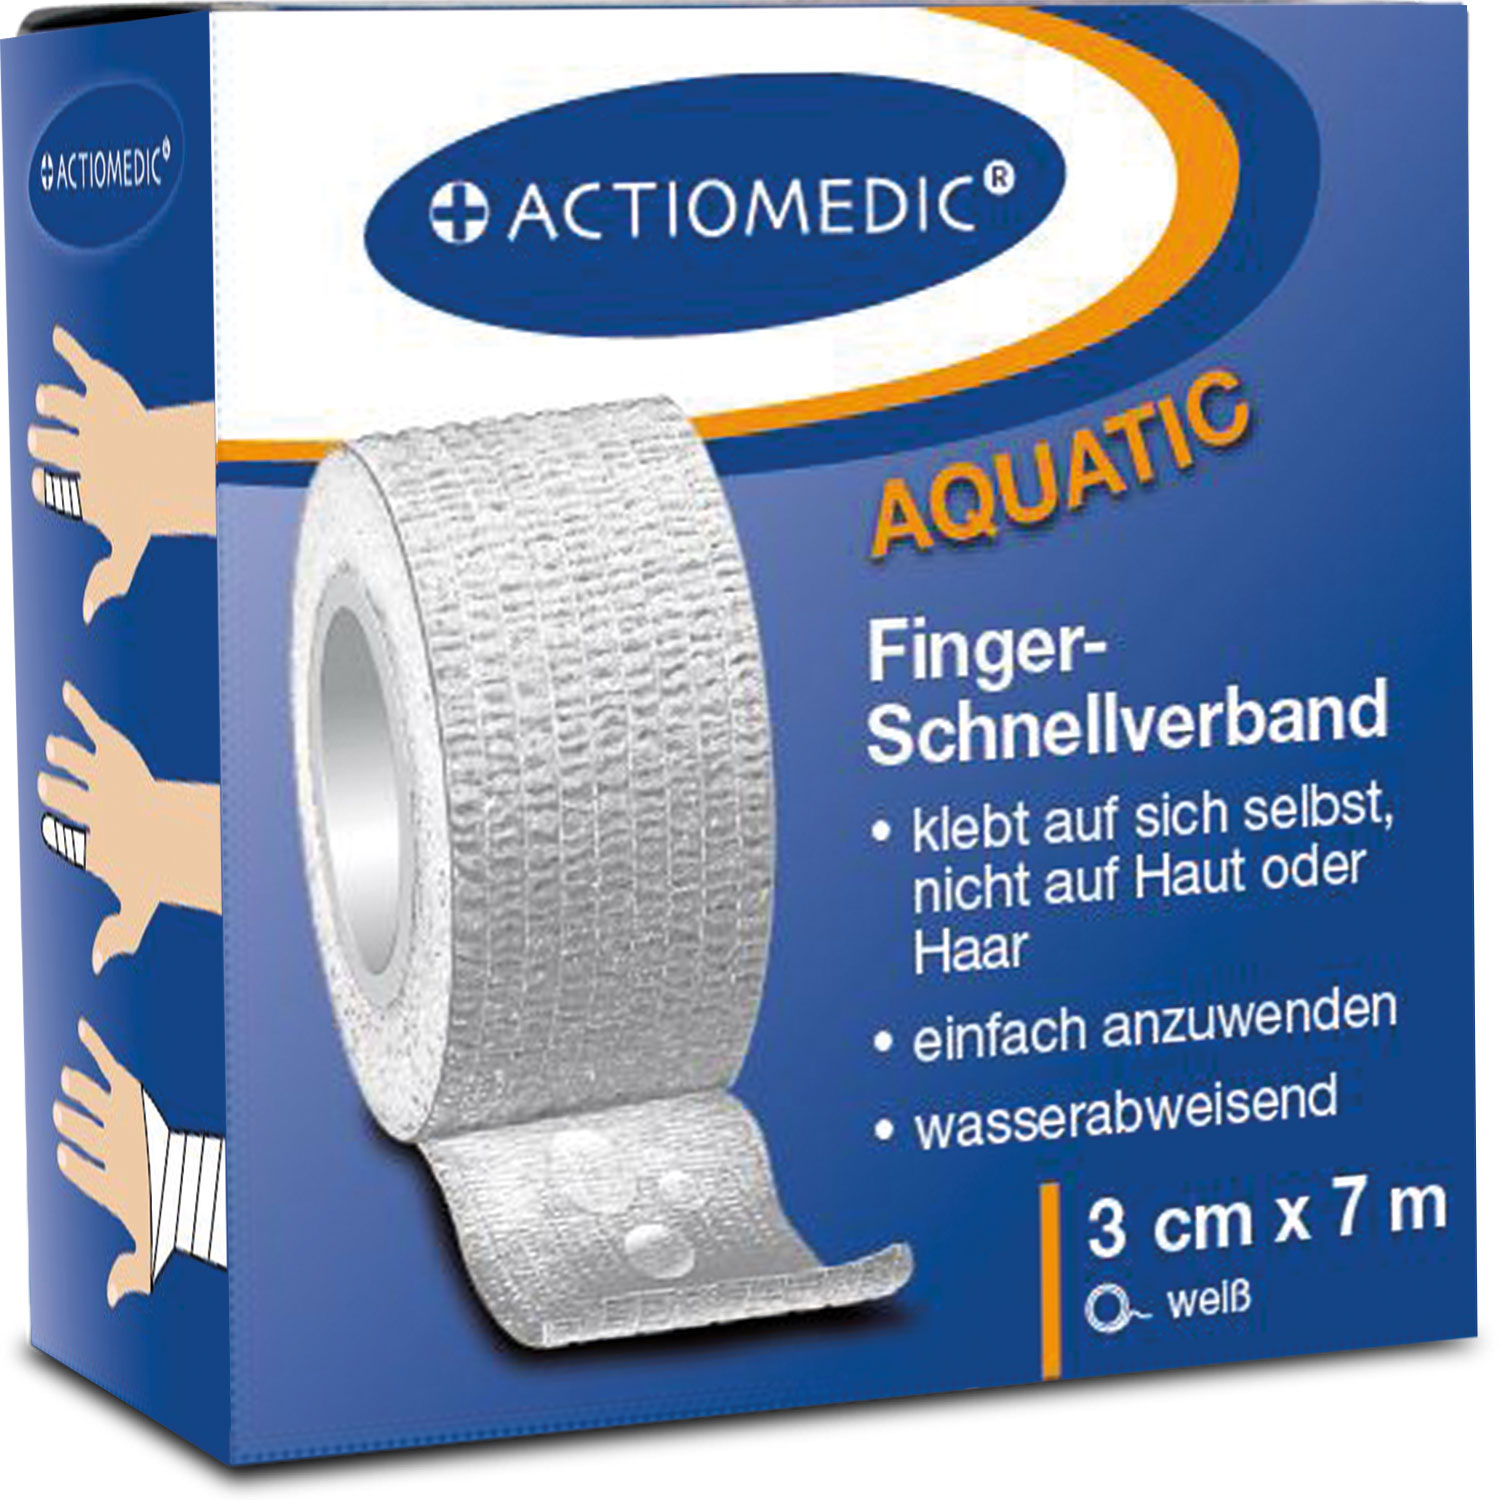 ACTIOMEDIC® AQUATIC  Schnellverband, weiß, 3 cm x 7 m, selbsthaftend}